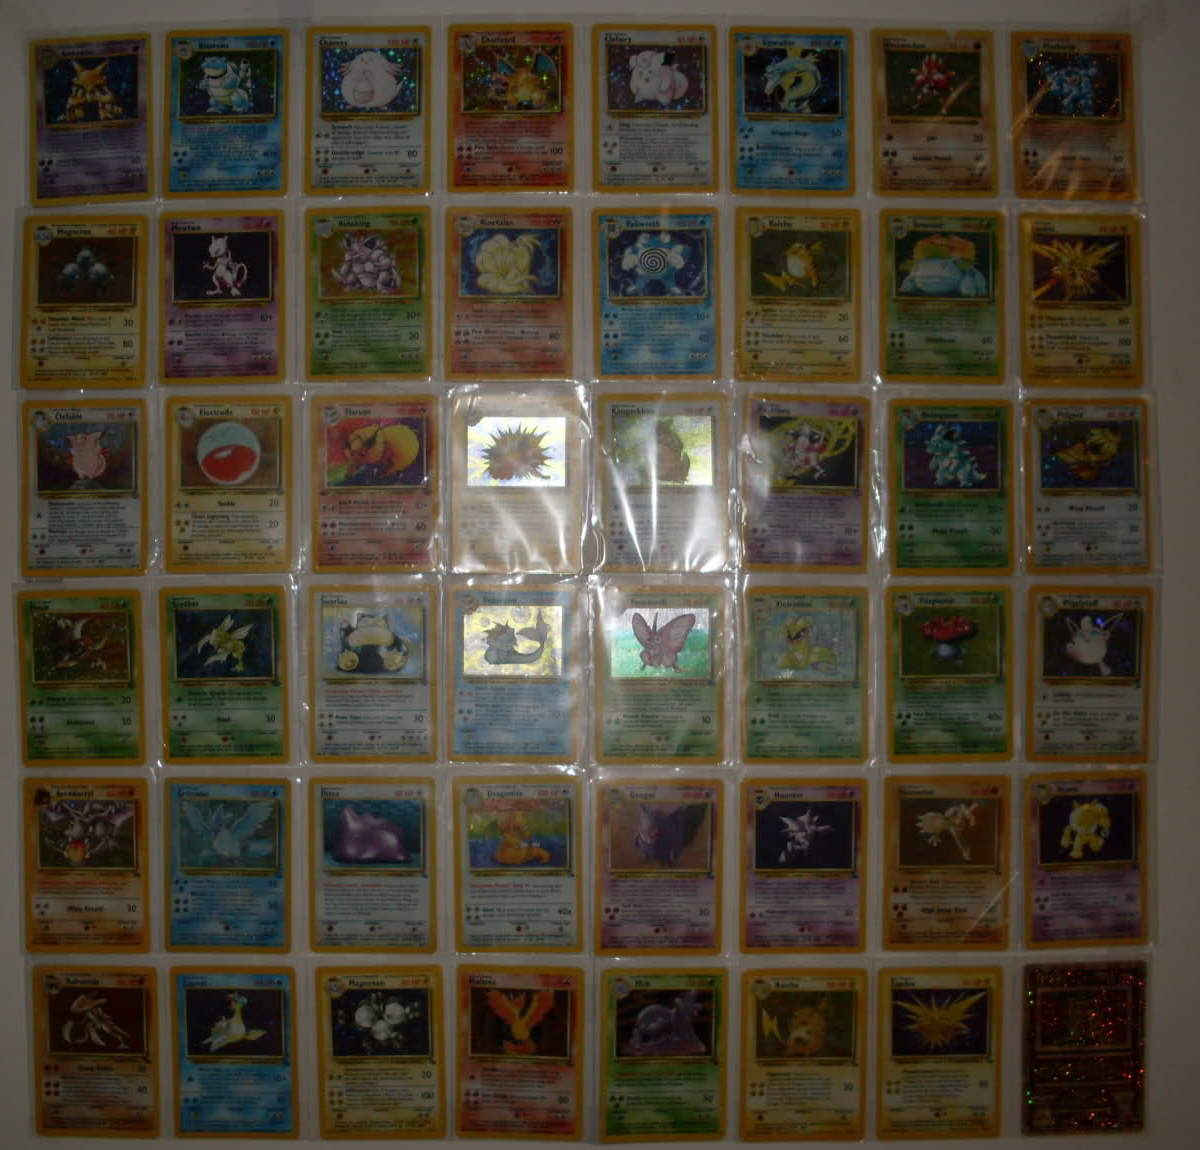 Tribute to my childhood. I'm pretty proud of this. Every holo from the first three sets - plus Ancient Mew because that card is awesome, also 47 cards don't mak